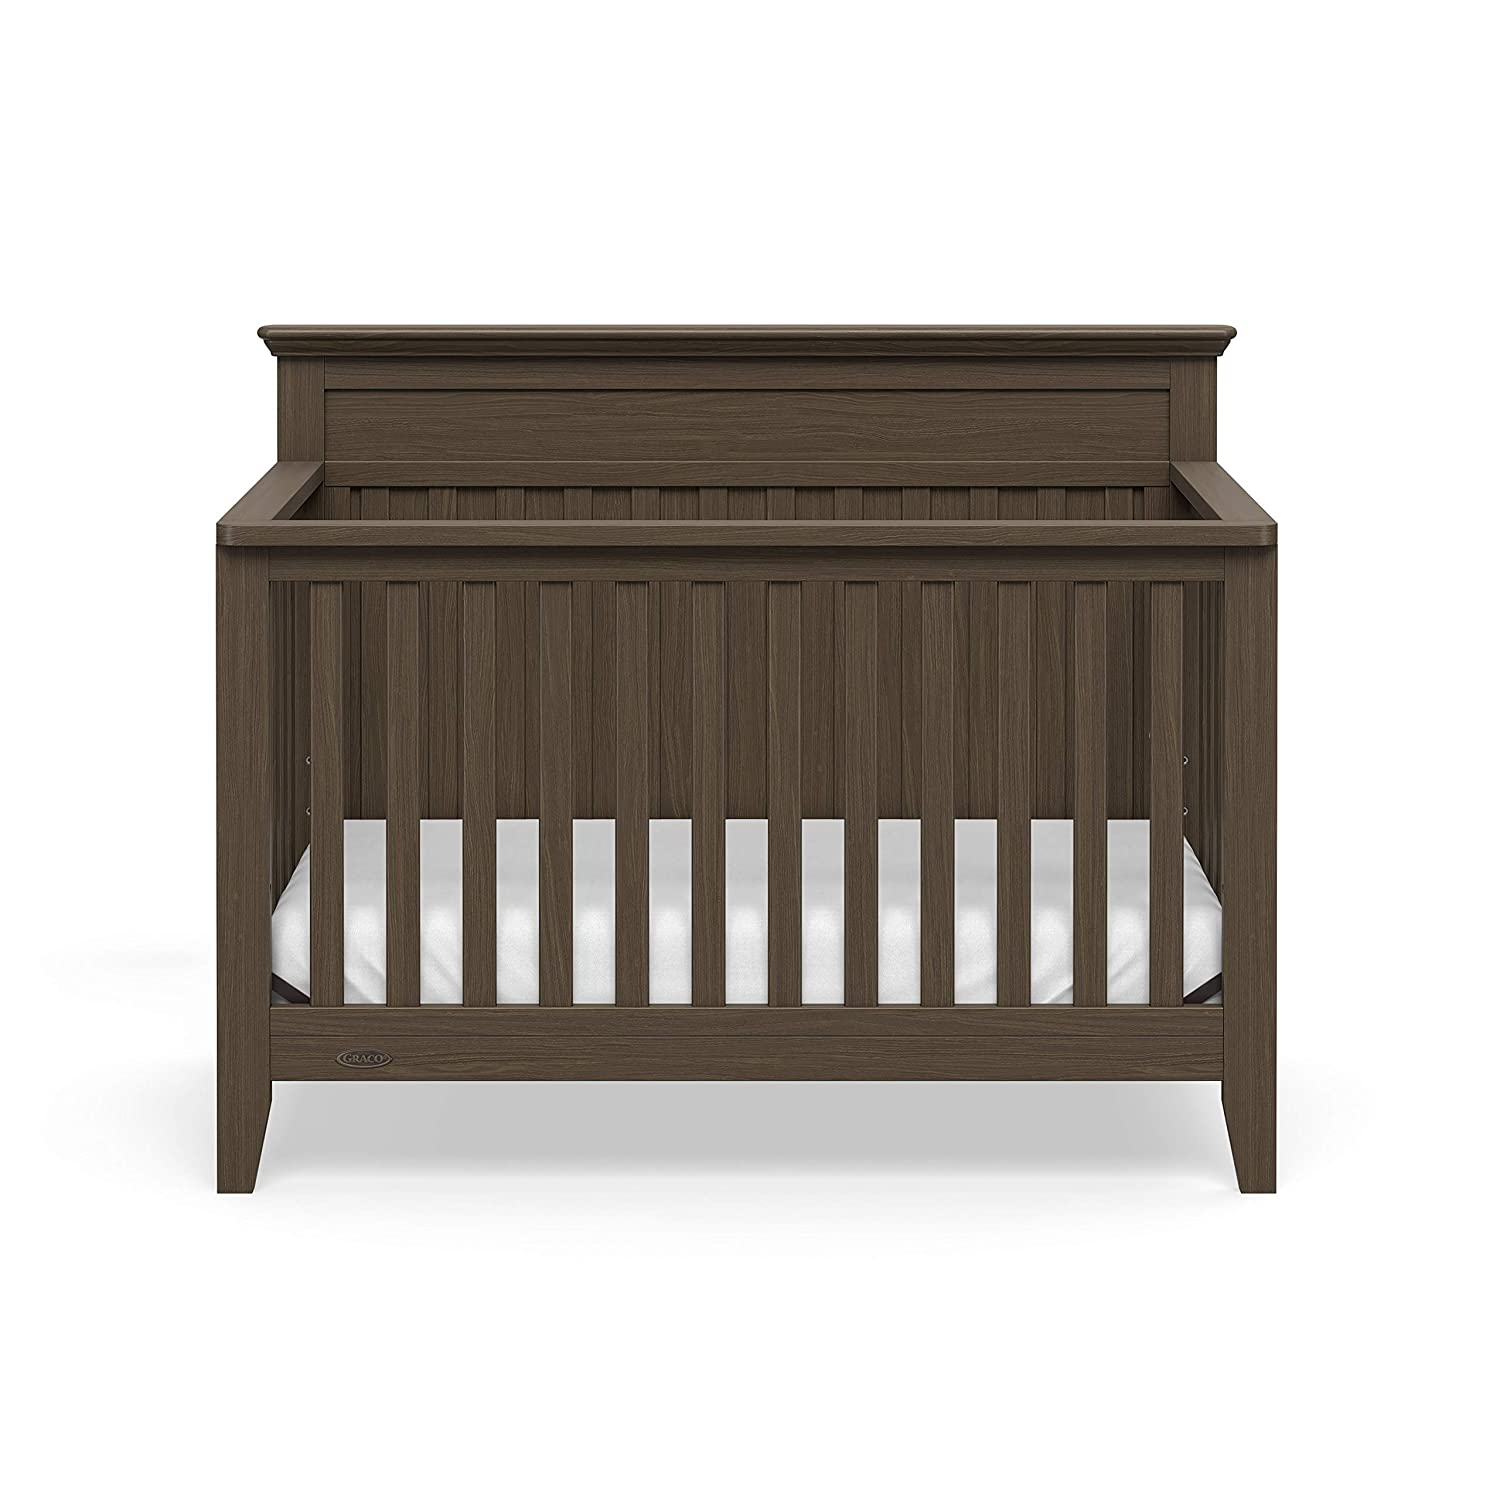 3-Position Adjustable Mattress Support Base Easily Converts to Toddler Bed Rustic Style Espresso Daybed Graco Georgia 4-in-1 Convertible Crib and Full-Size Bed